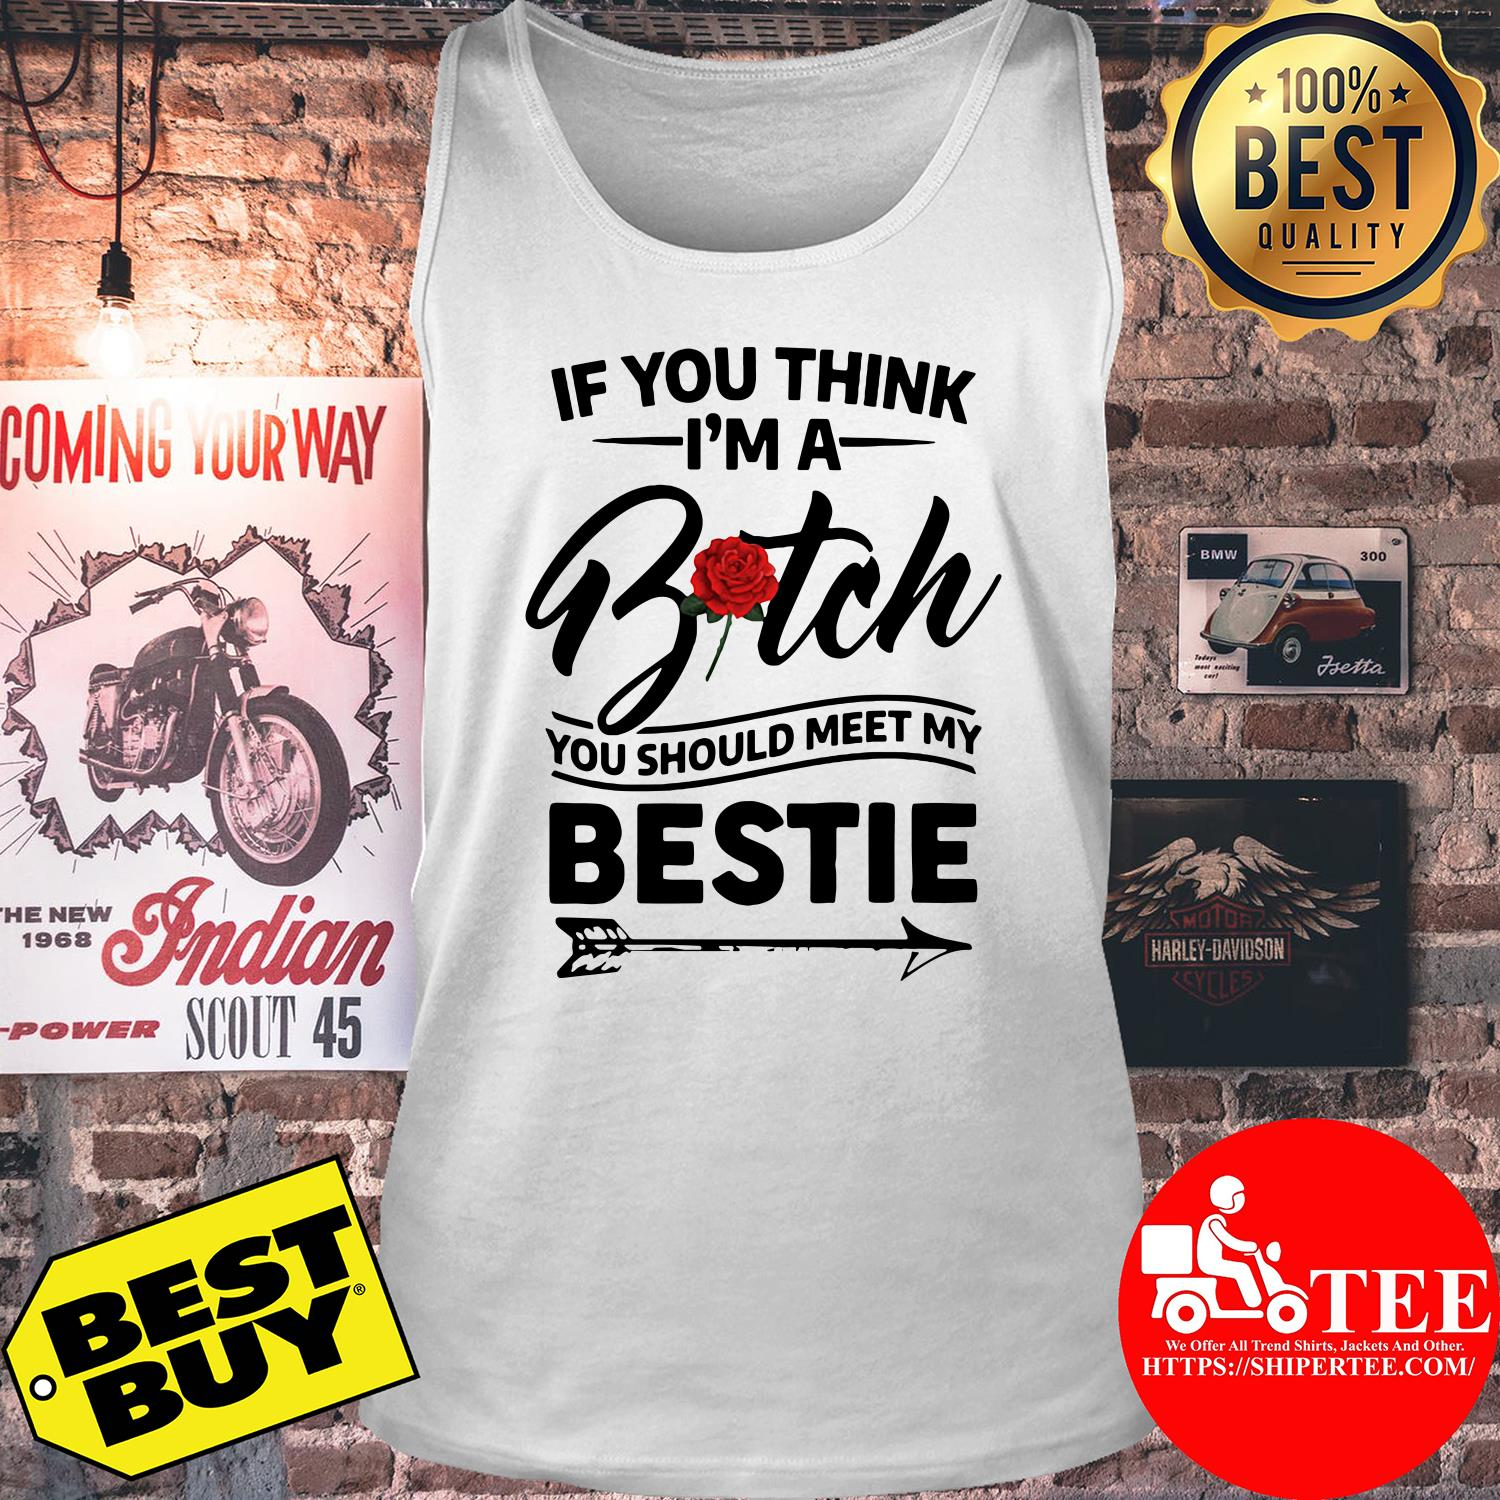 If you think I'm a bitch you should meet my bestie tank top